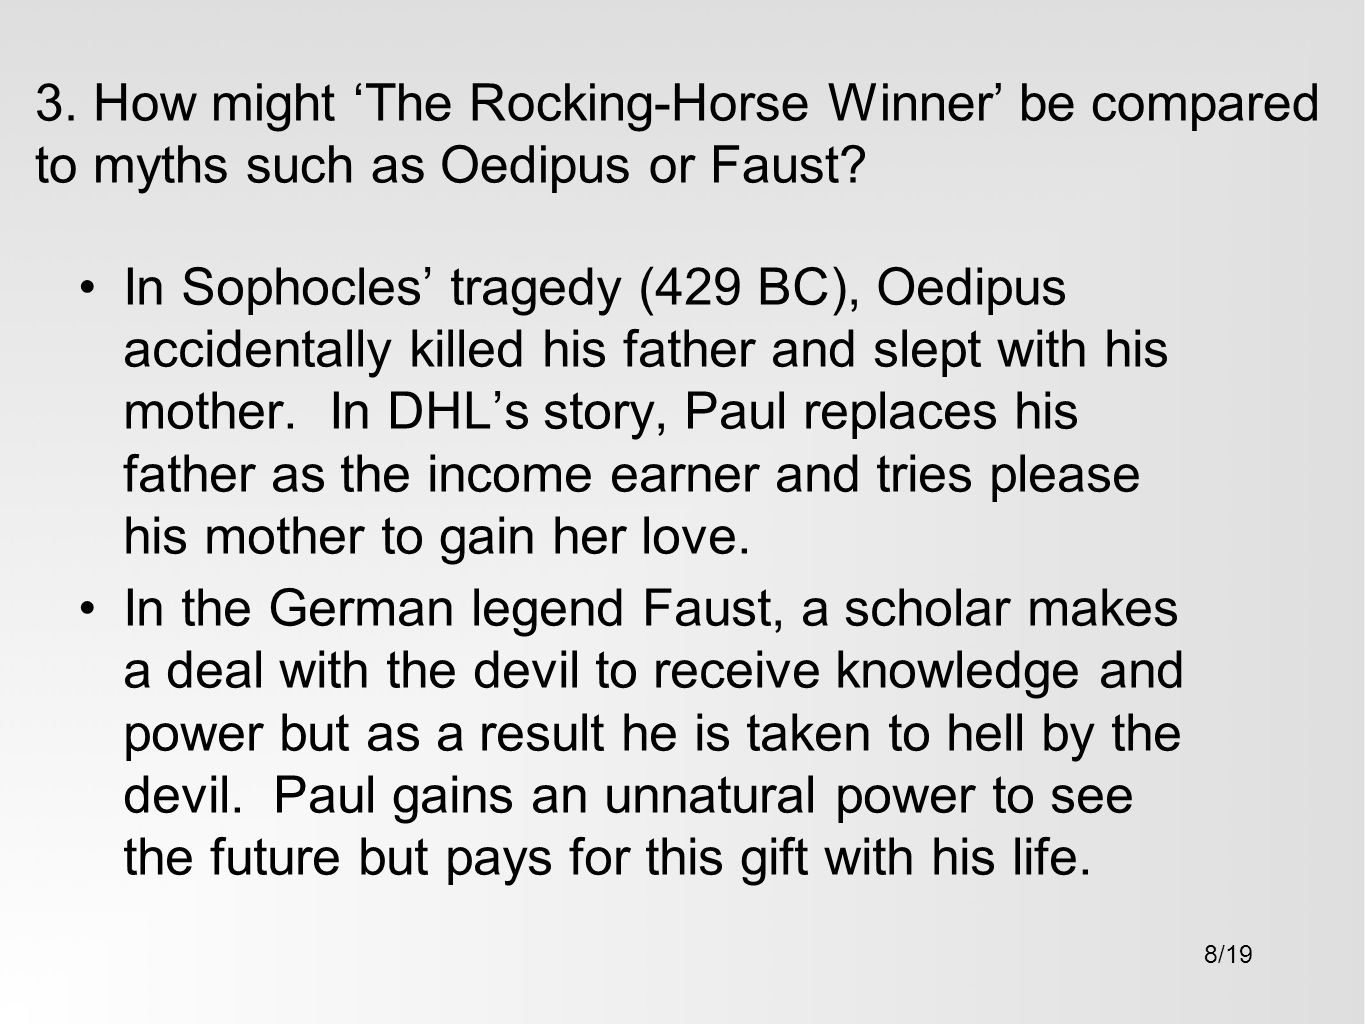 materialism in the rocking horse essay Only hester is motherwhen one first reads the rocking-horse winner by d h lawrence,  essay by image_punkr,  materialism in rocking horse winner.